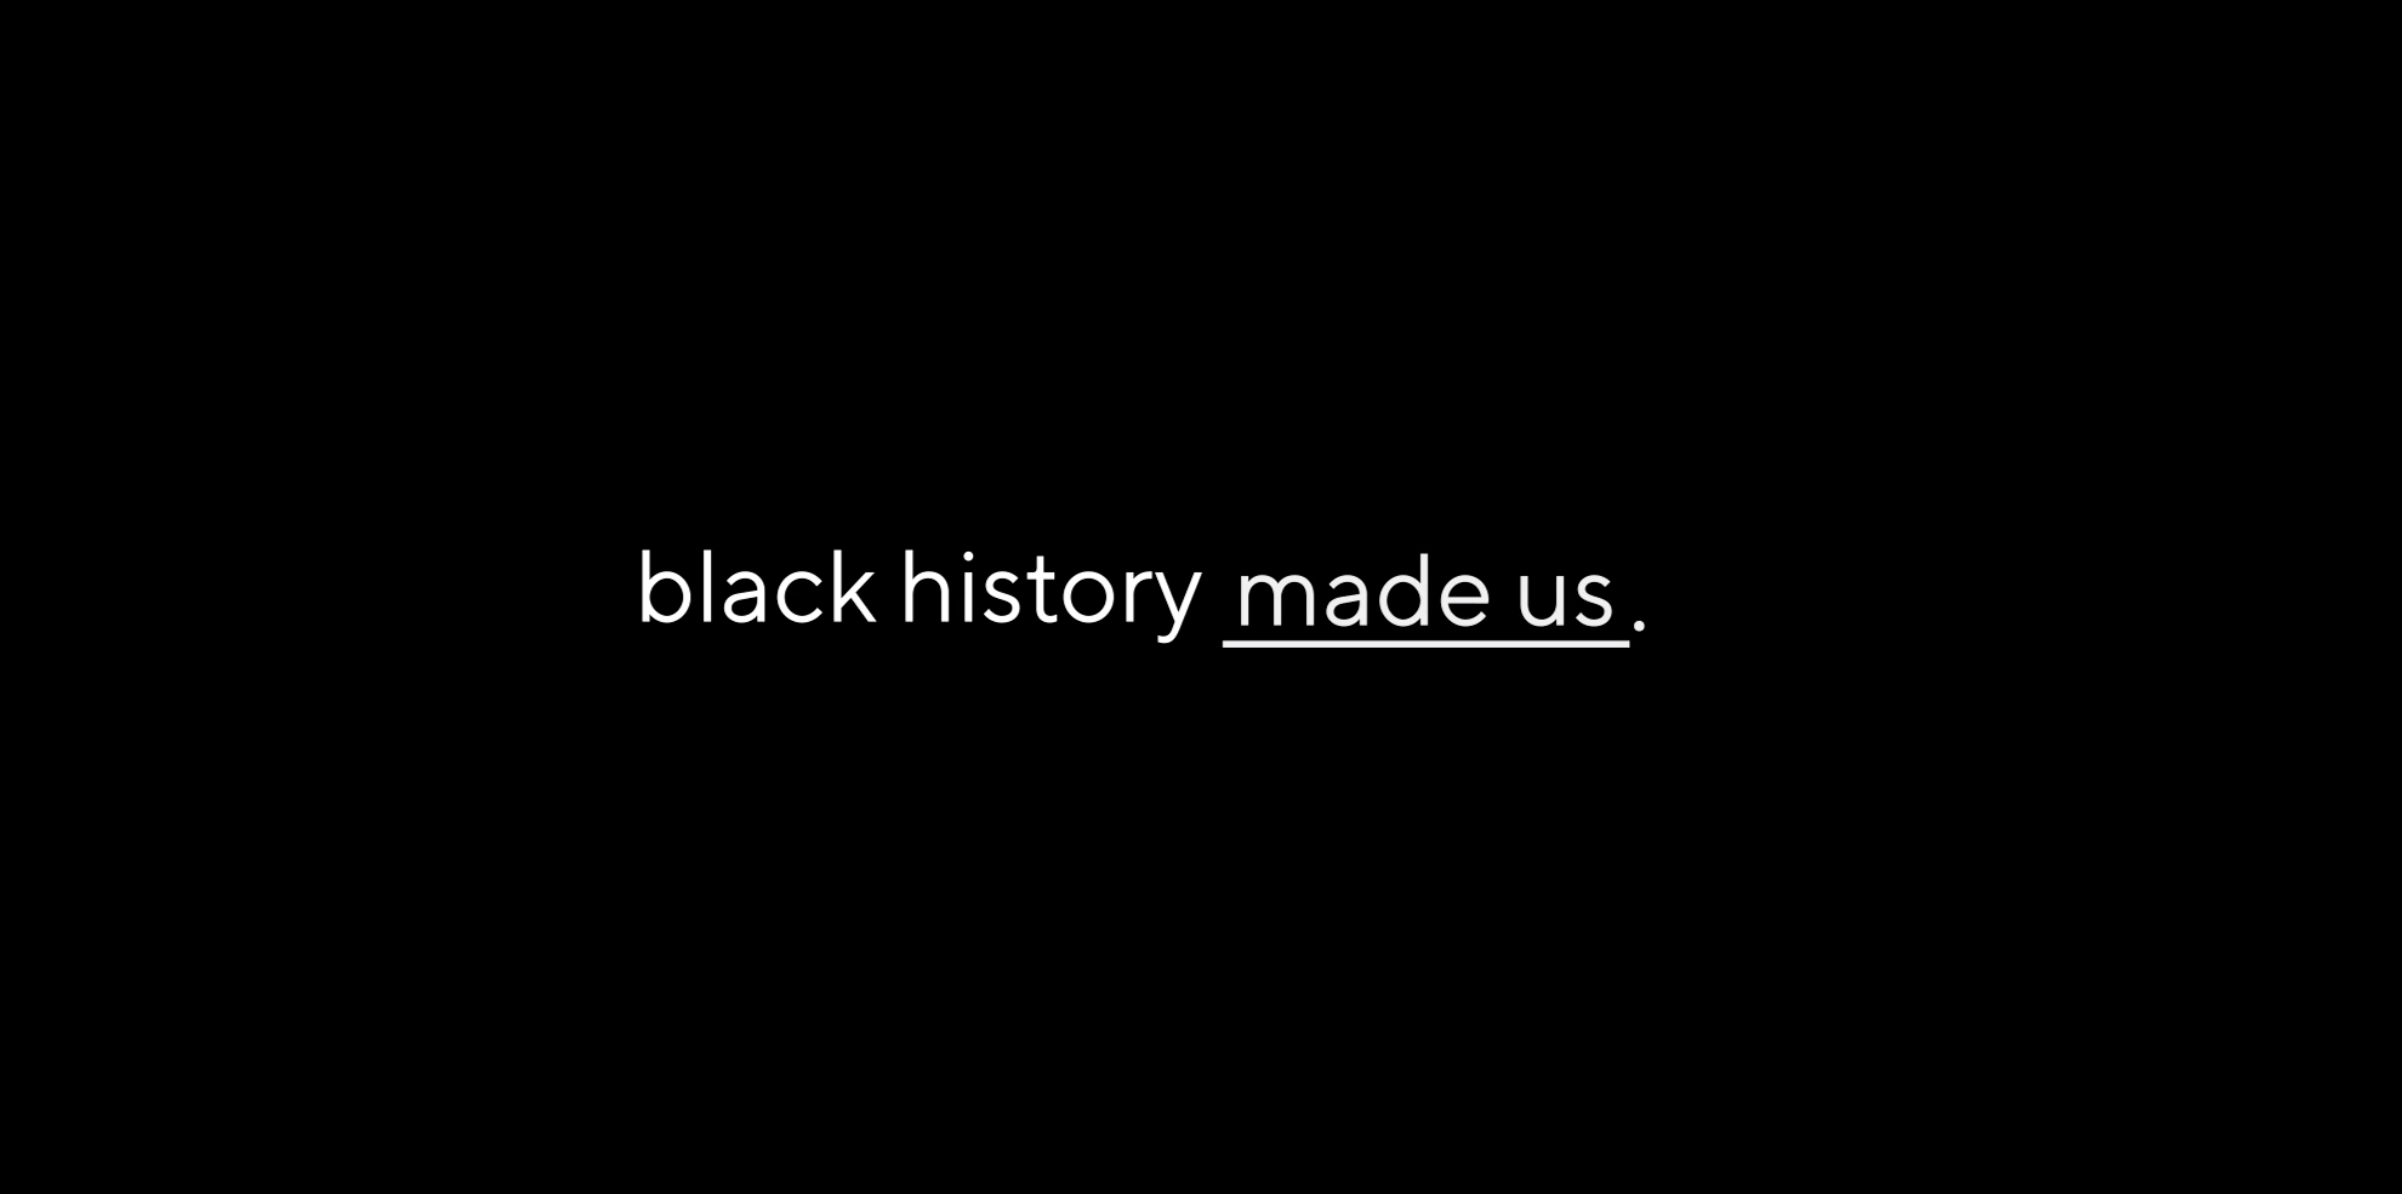 This February, We Recognize How 'Black History Made Us'